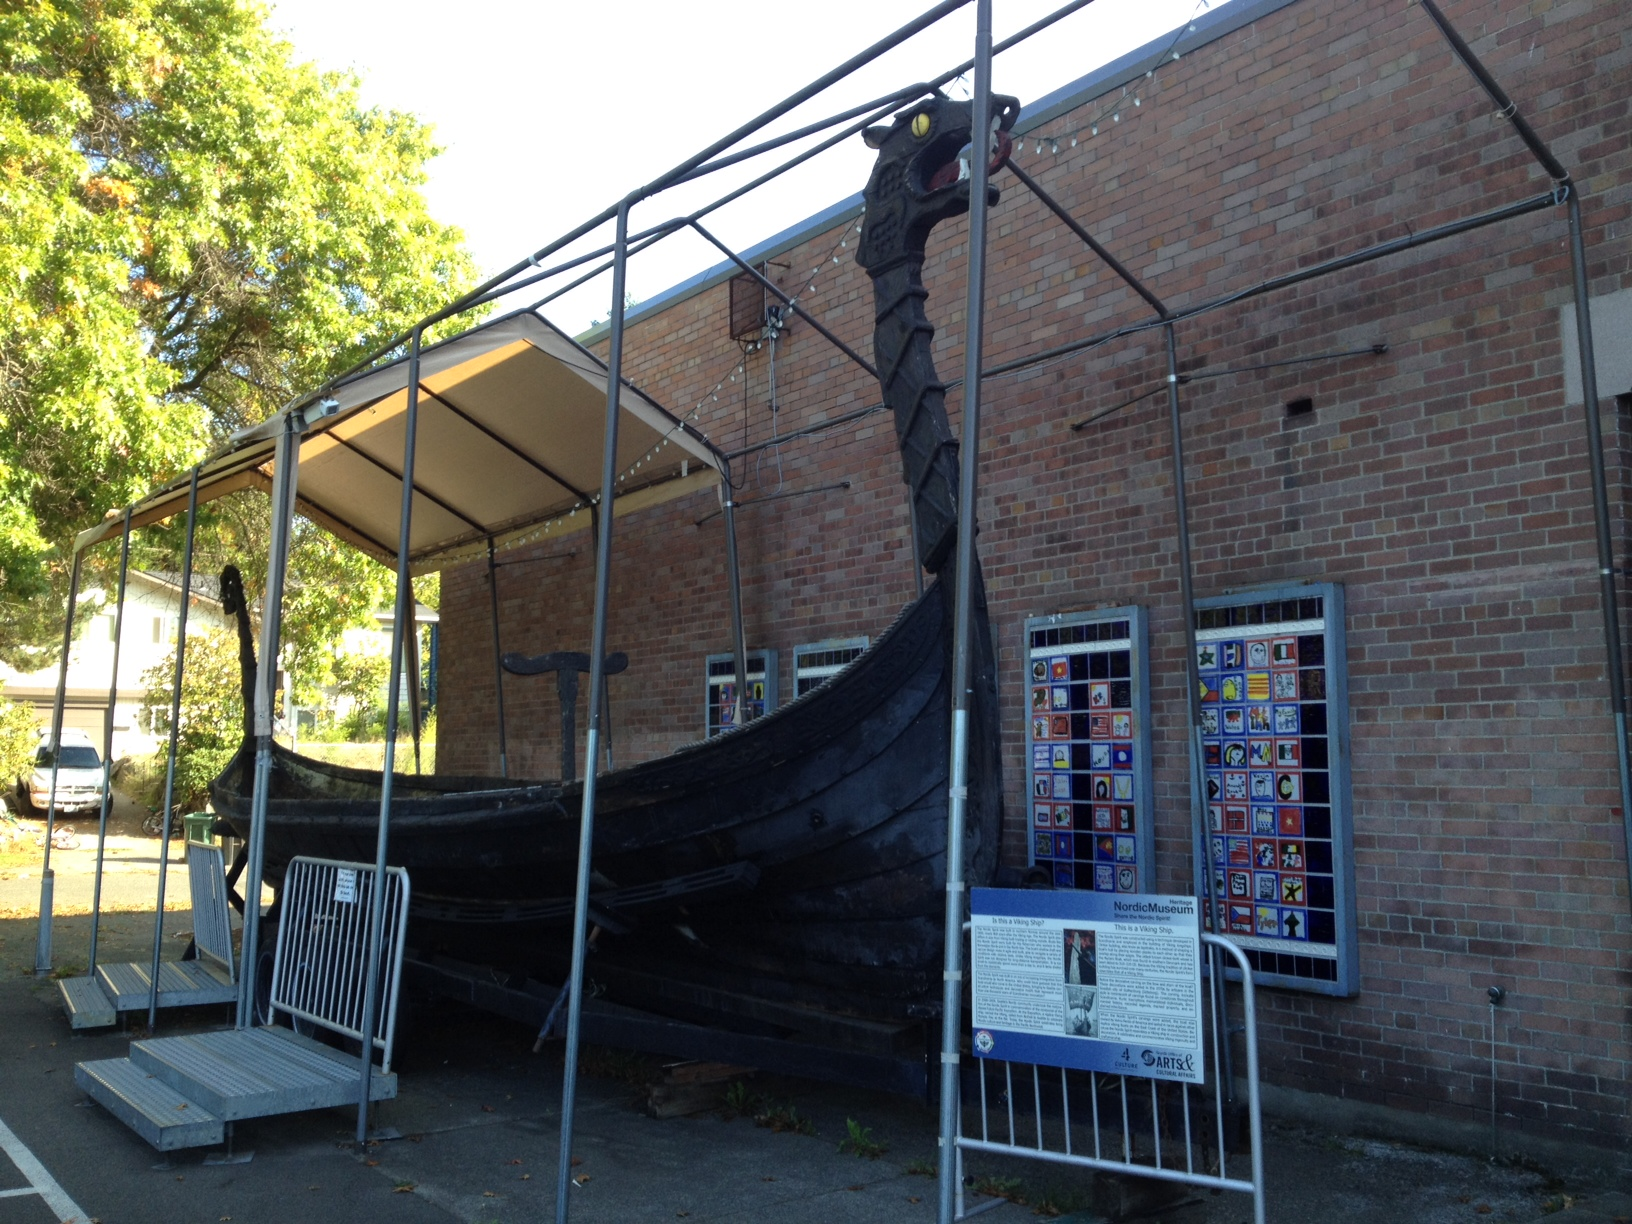 Just in case you weren't sure… a Viking boat at the main entry to the Nordic Museum.